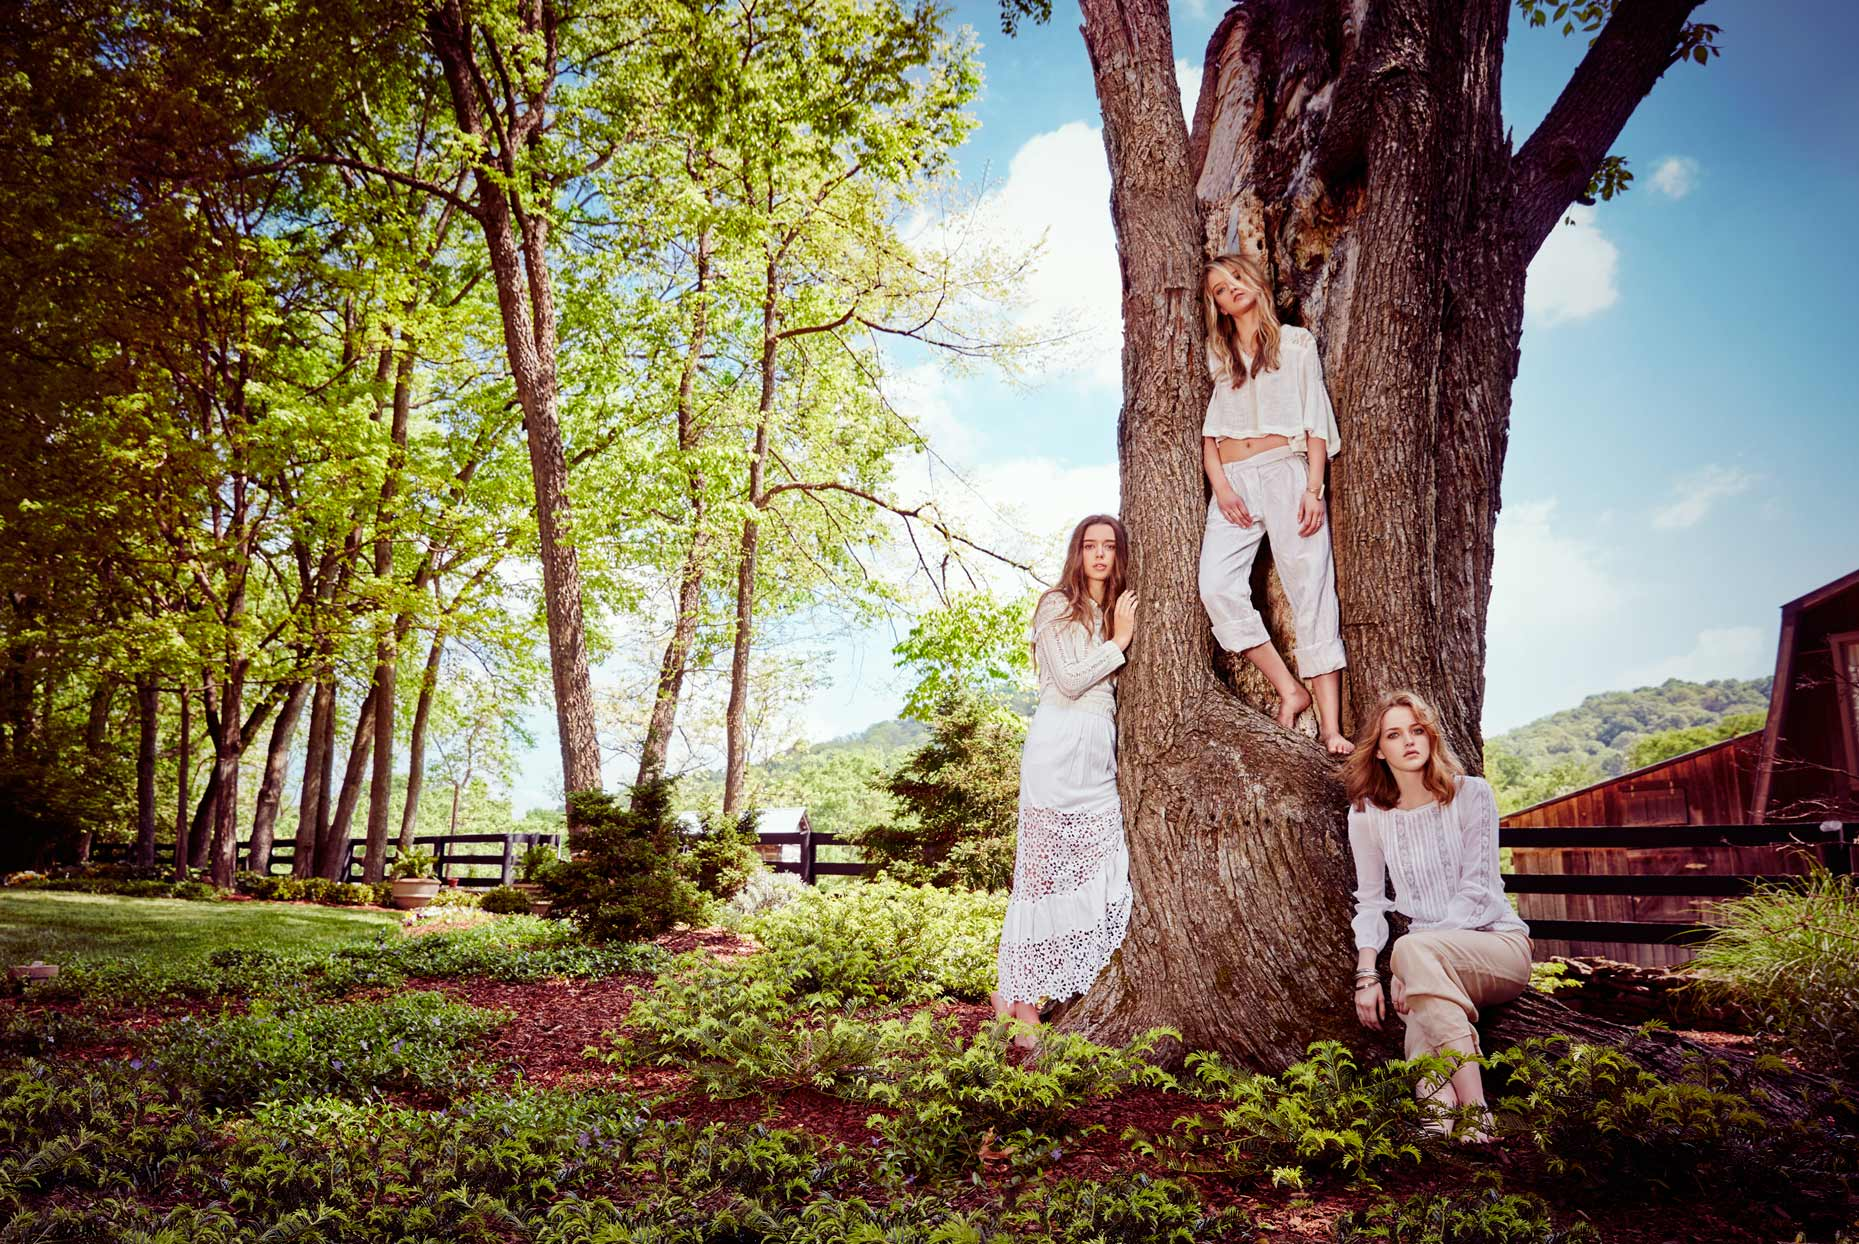 Three women modeling by large old tree in country - Mark DeLong: Fashion Gallery